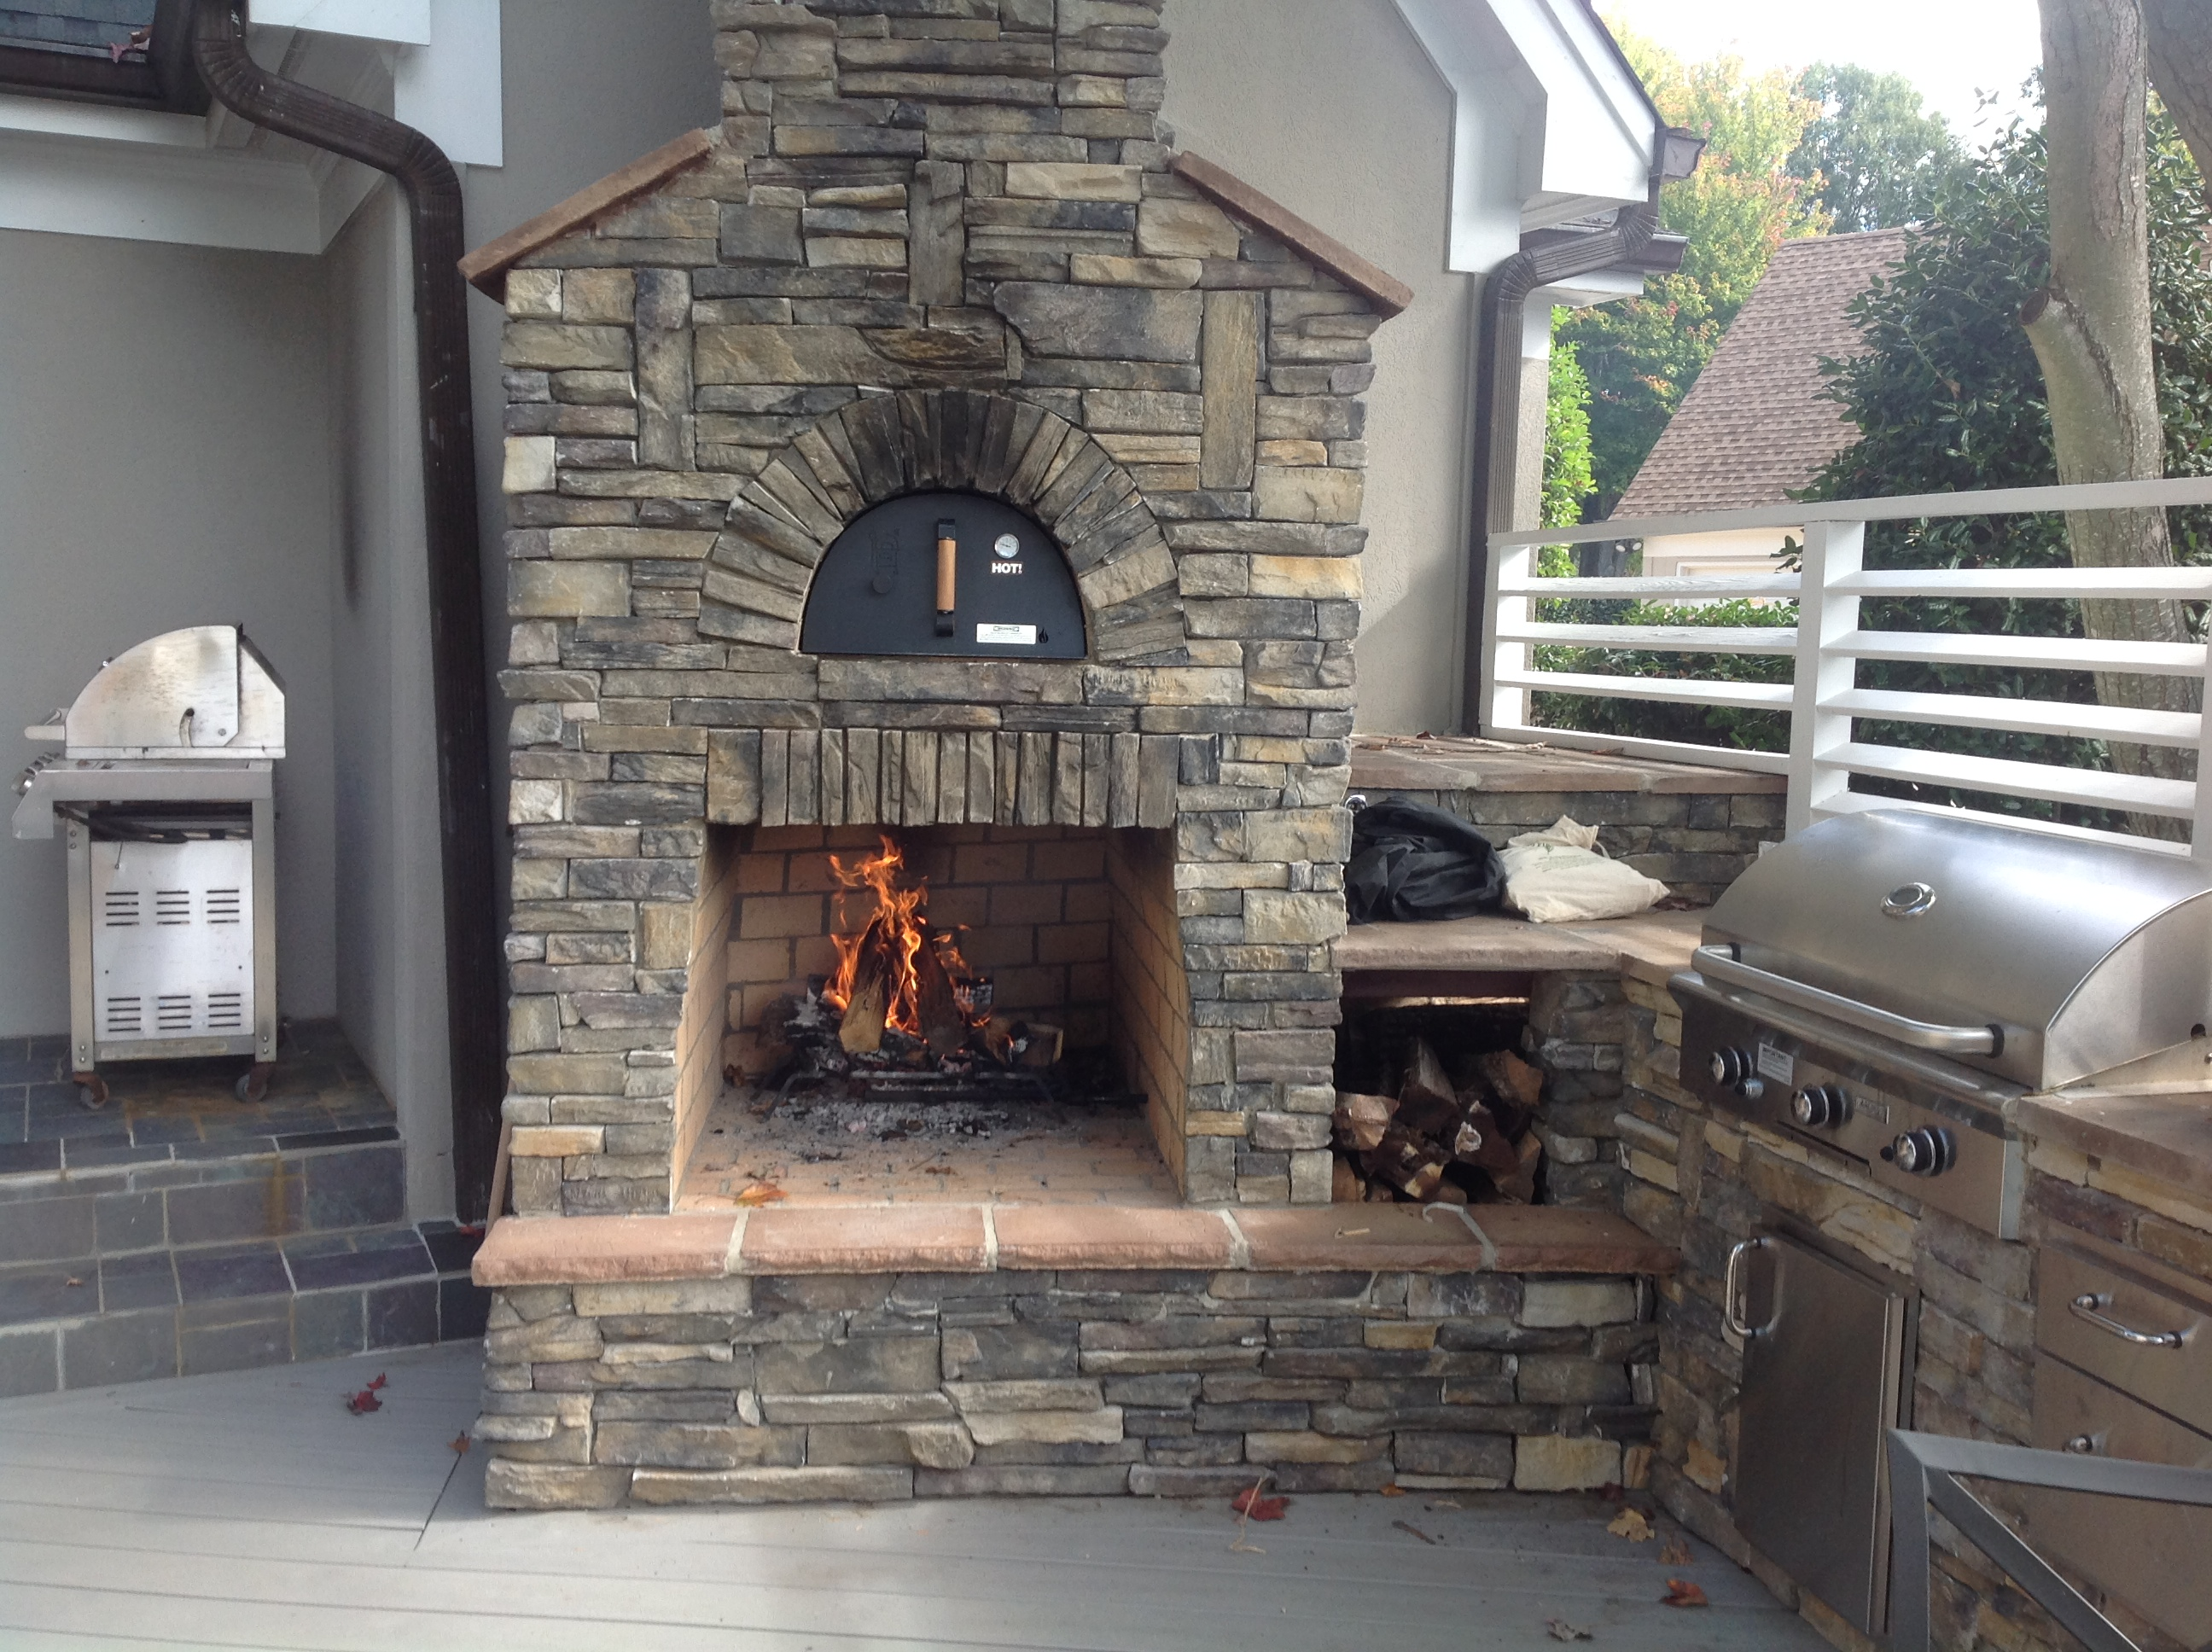 Custom Outdoor Fireplace And Pizza Oven With An Outdoor Kitchen On A Trex  Transcends Gravel Path Part 85